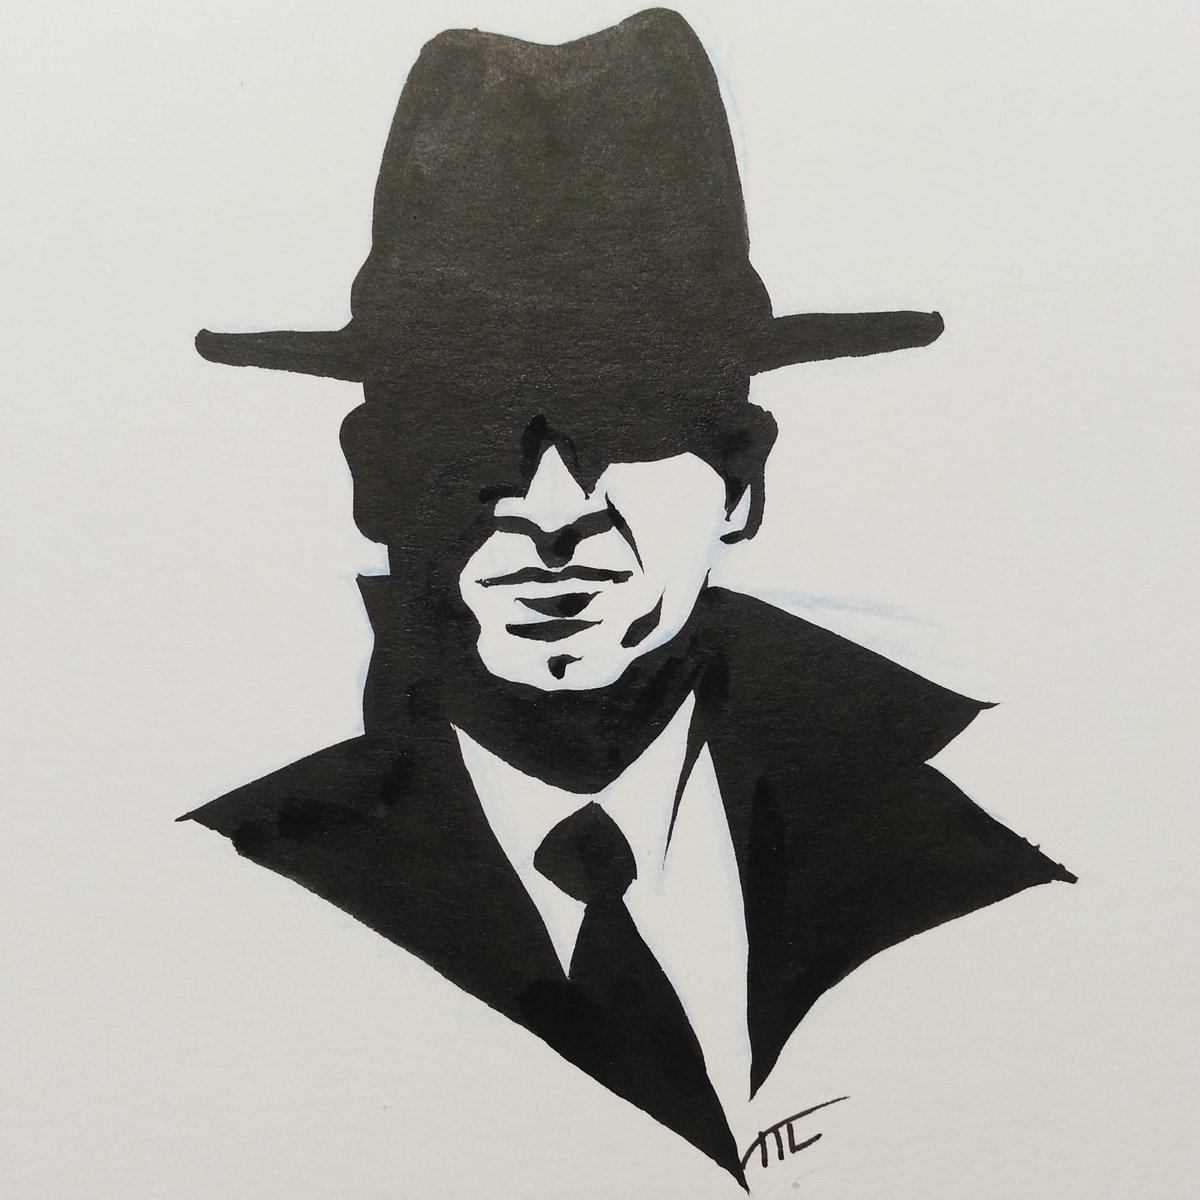 michelle lodge on twitter this noirvember day i again ink focusing on shadow only no line noir drawing inking bnw detectivecomics detective